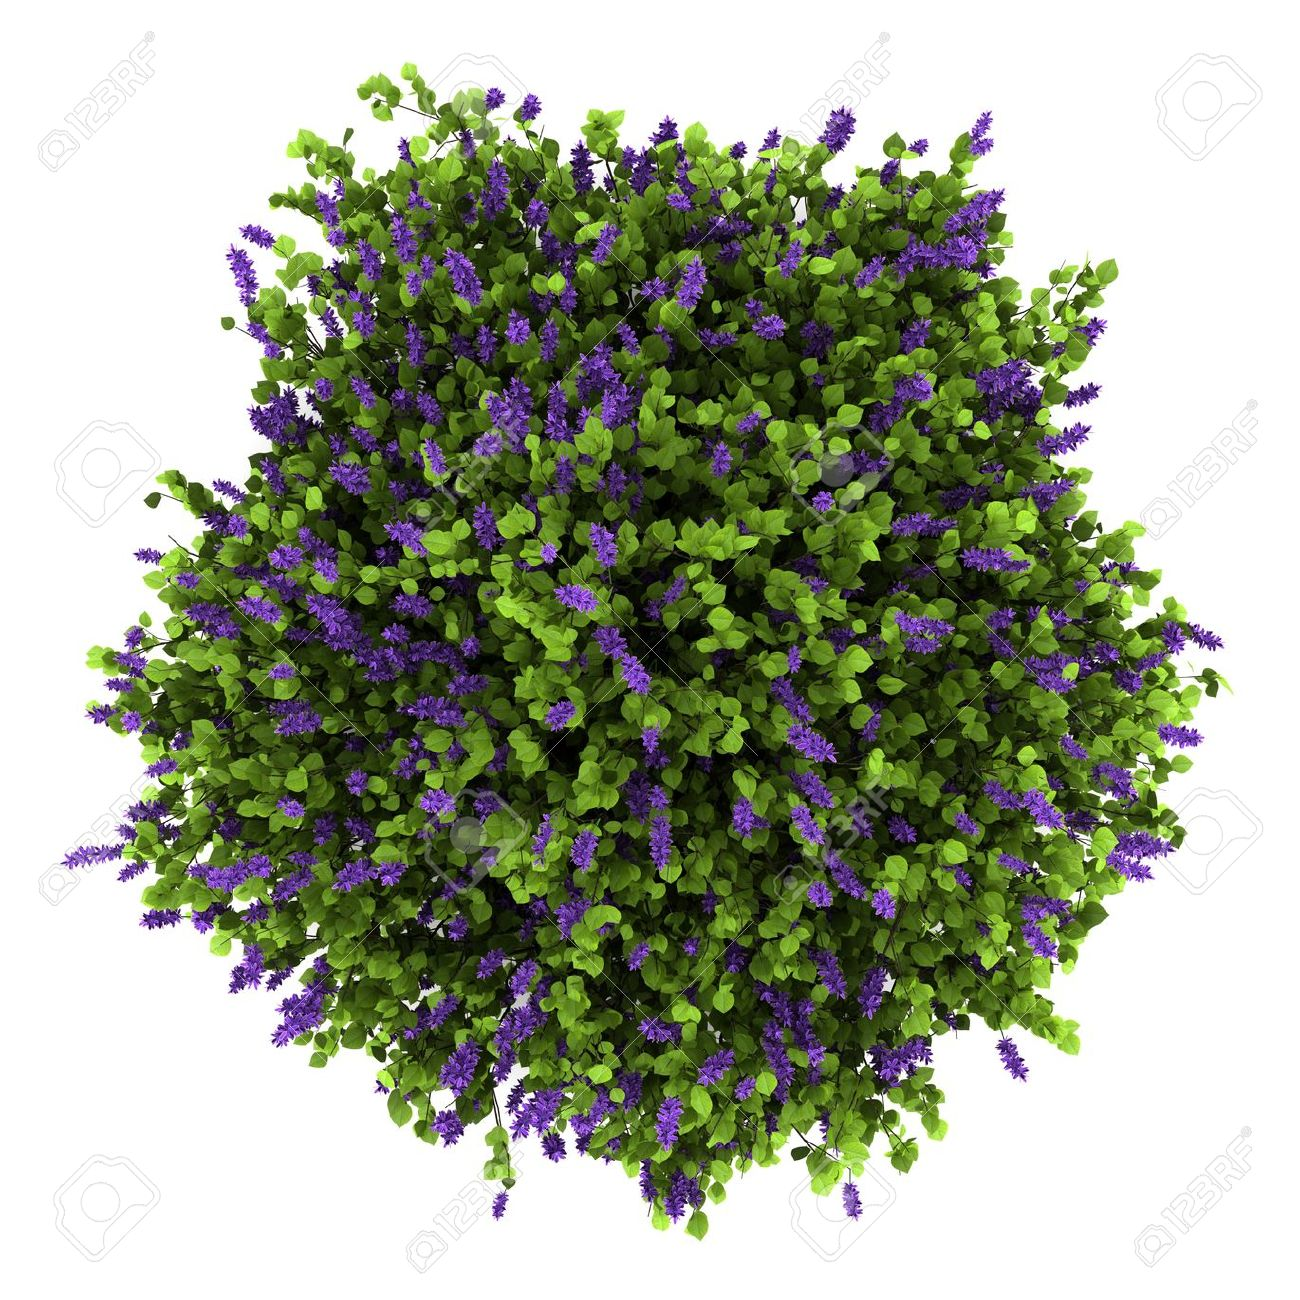 Top View Of Lilac Flowers Bush Isolated On White Background Stock